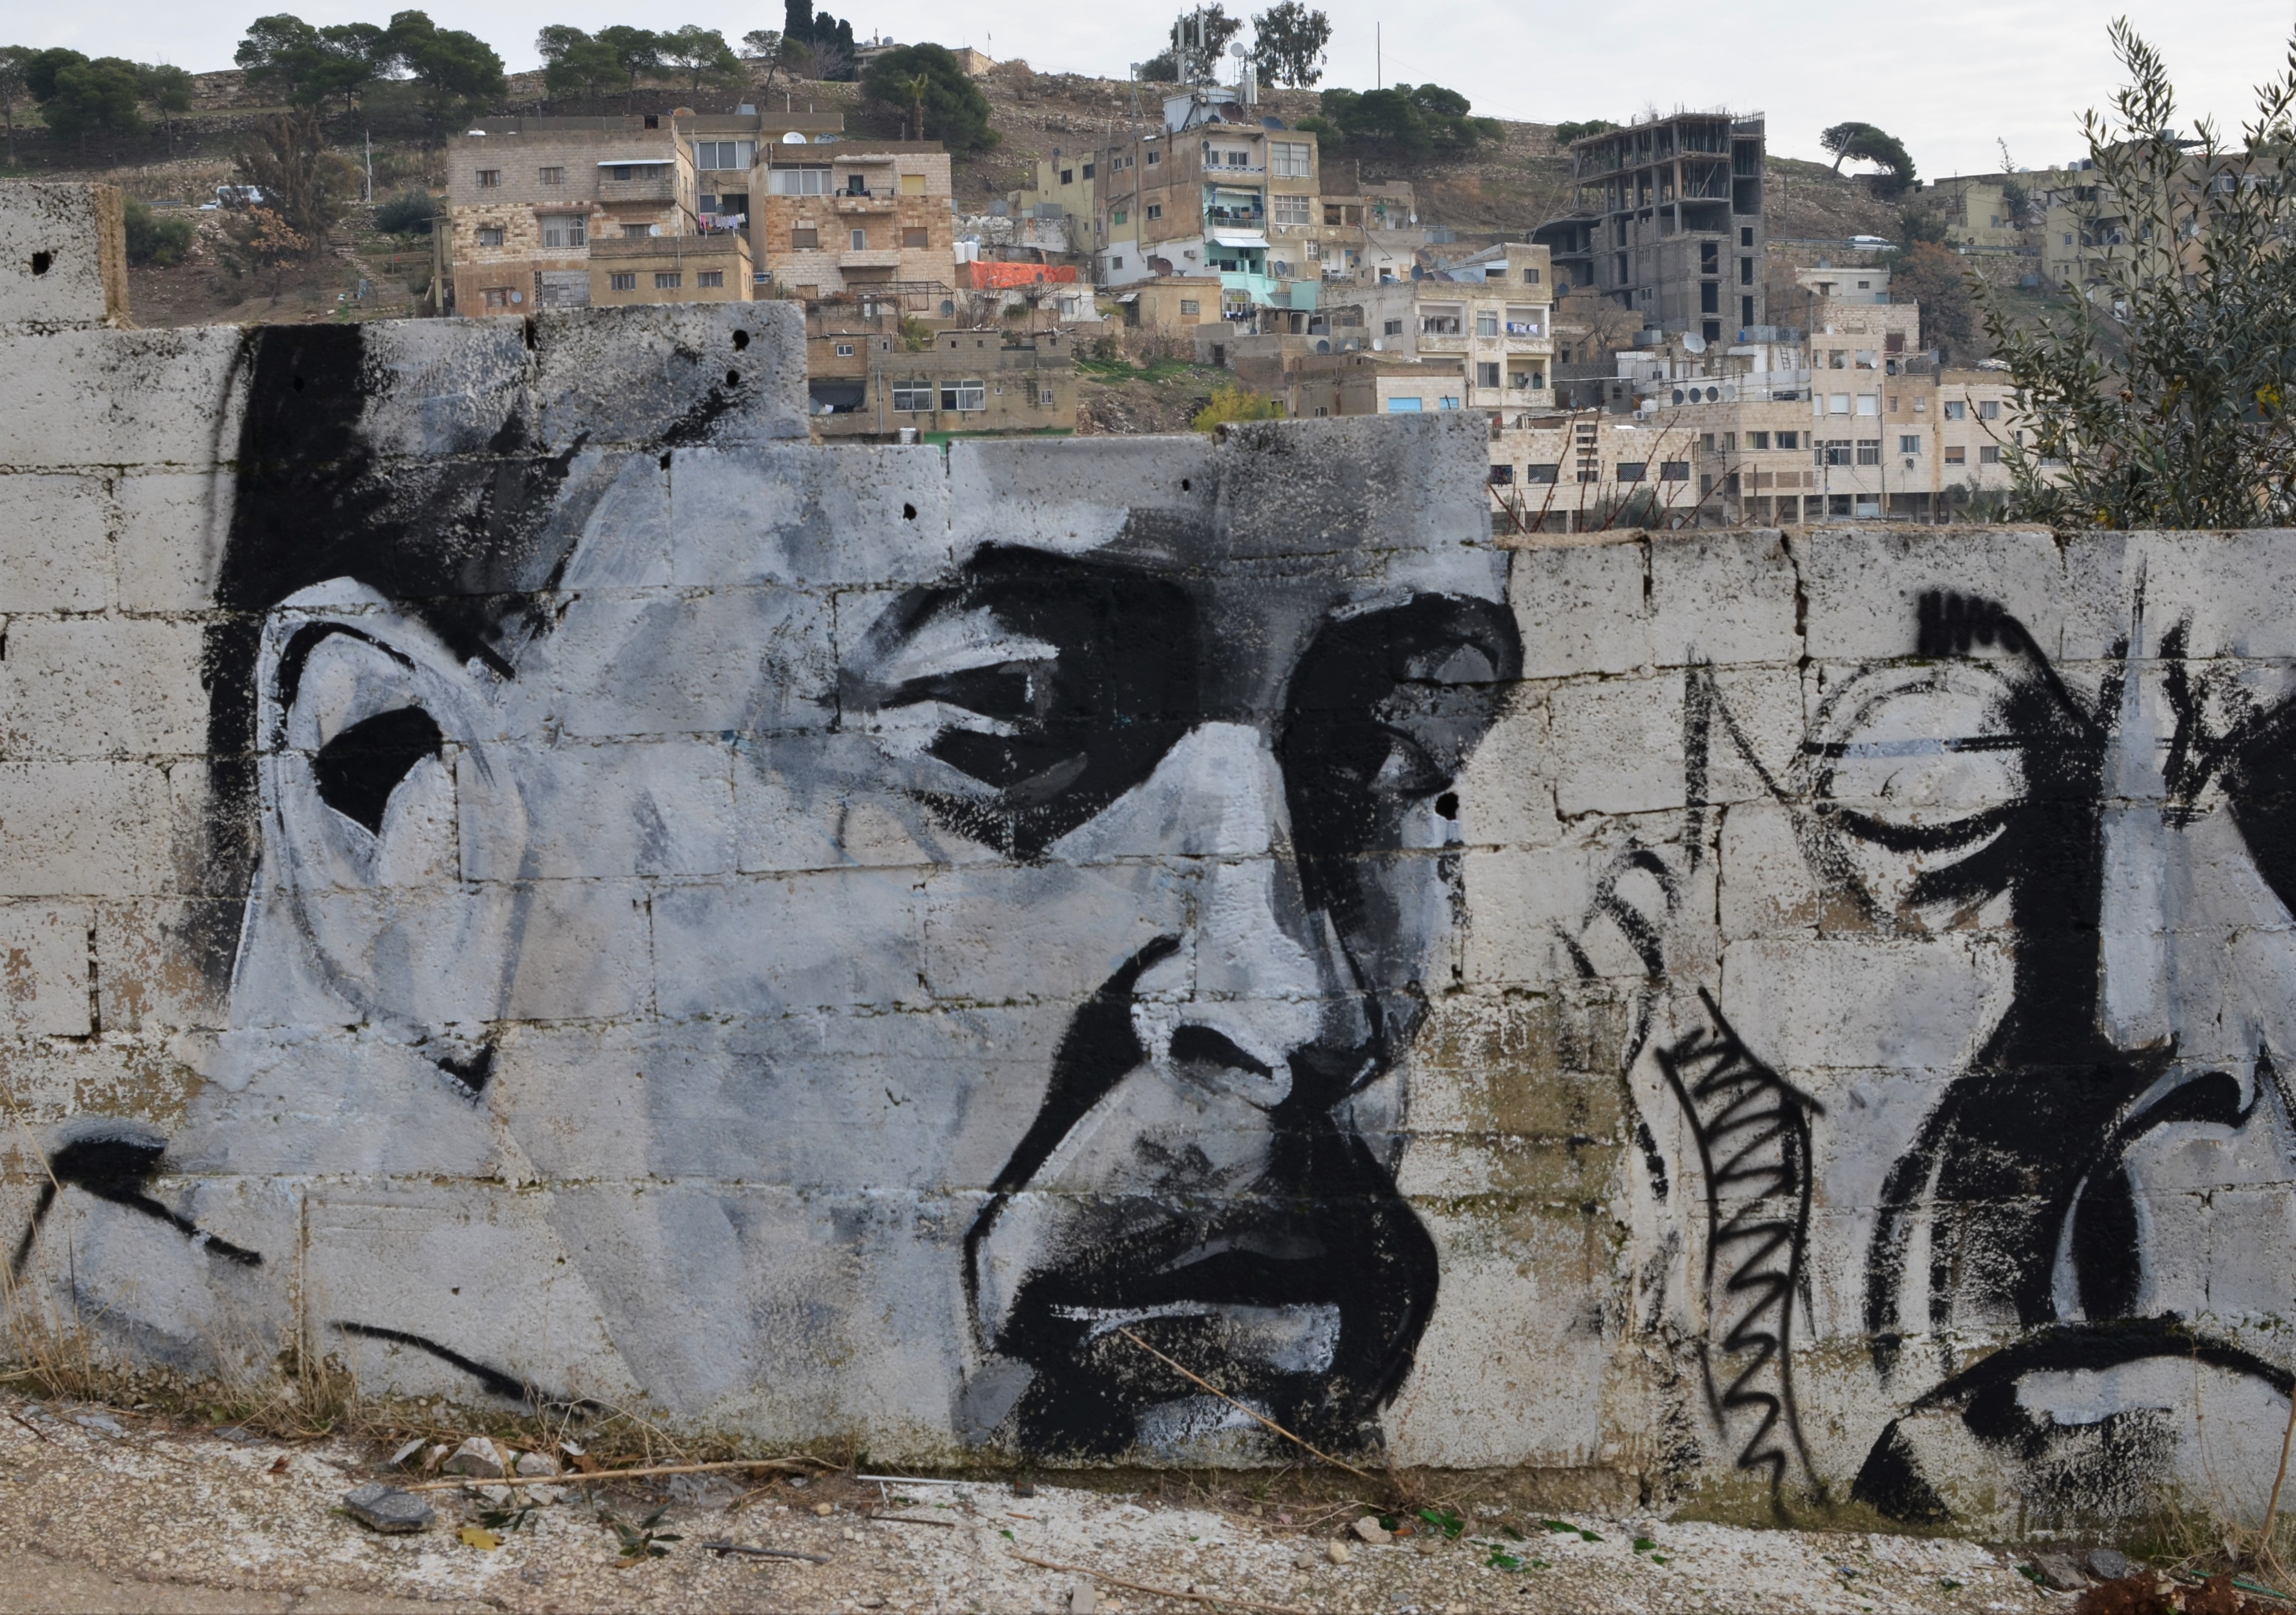 Black and white, grey tones, painting of a man's face in partial profile, on a wall. Can see the city beyond over the top of his forehead